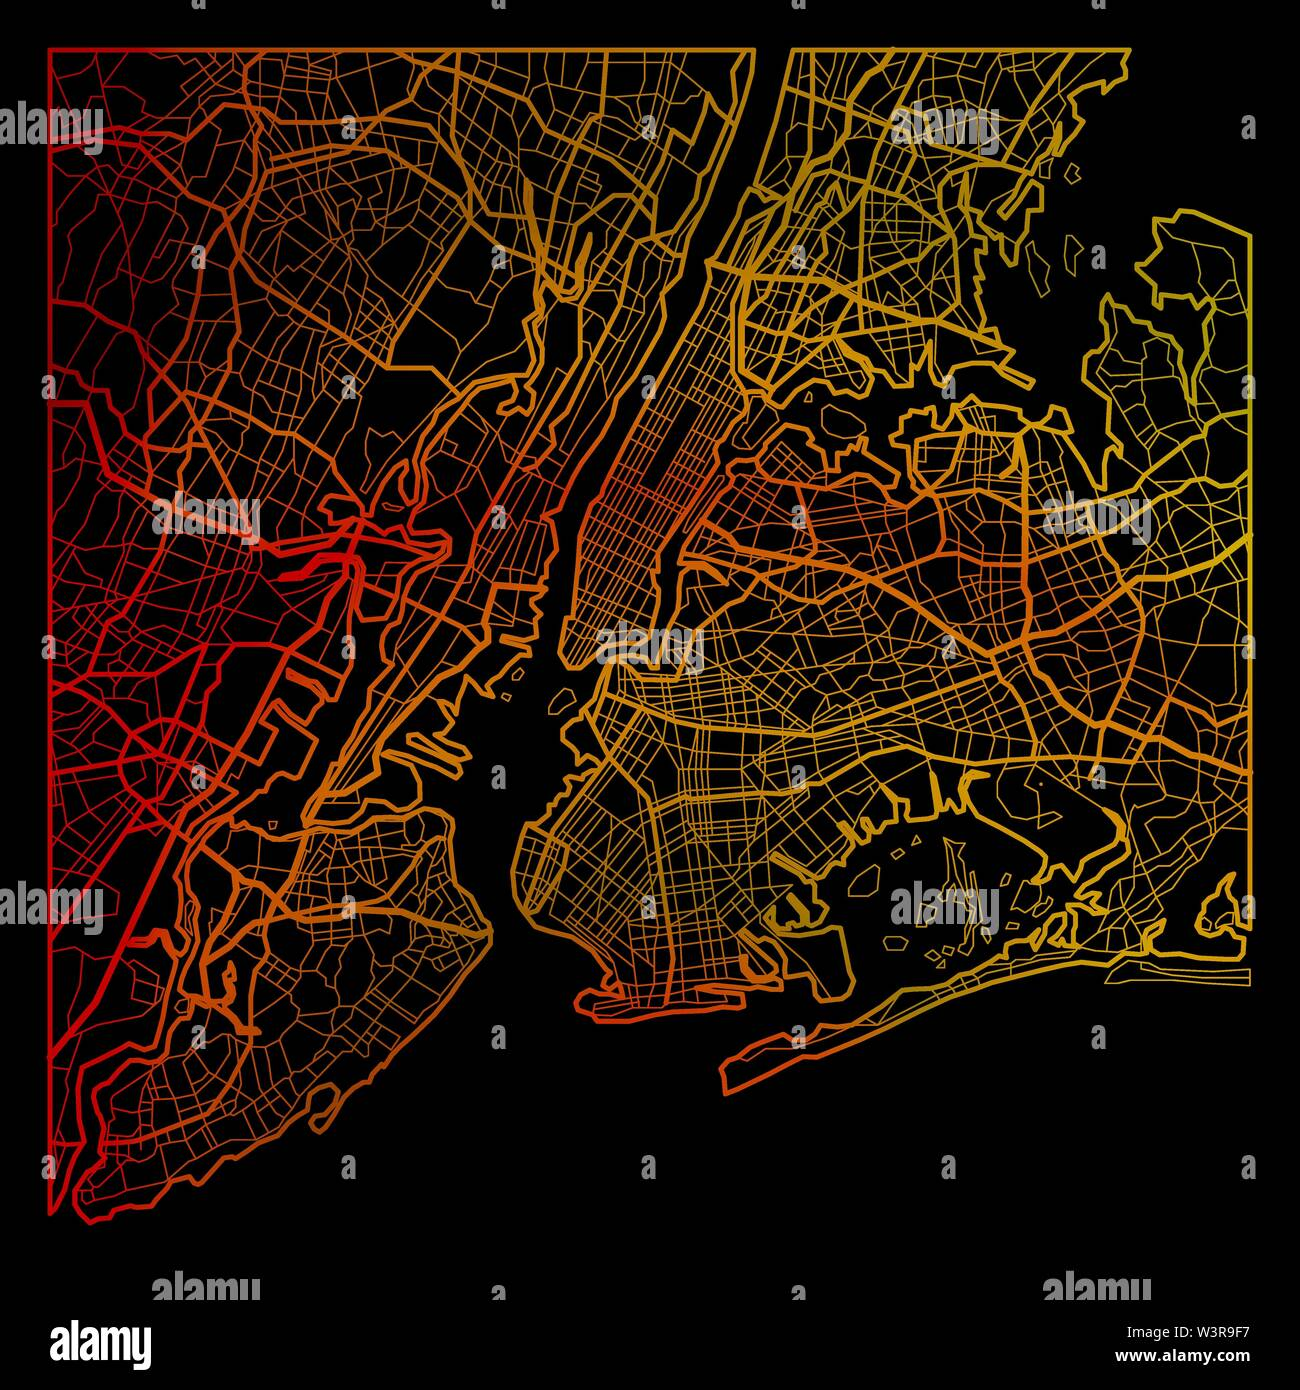 Color New York City map silhouette isolated on black background - Stock Vector